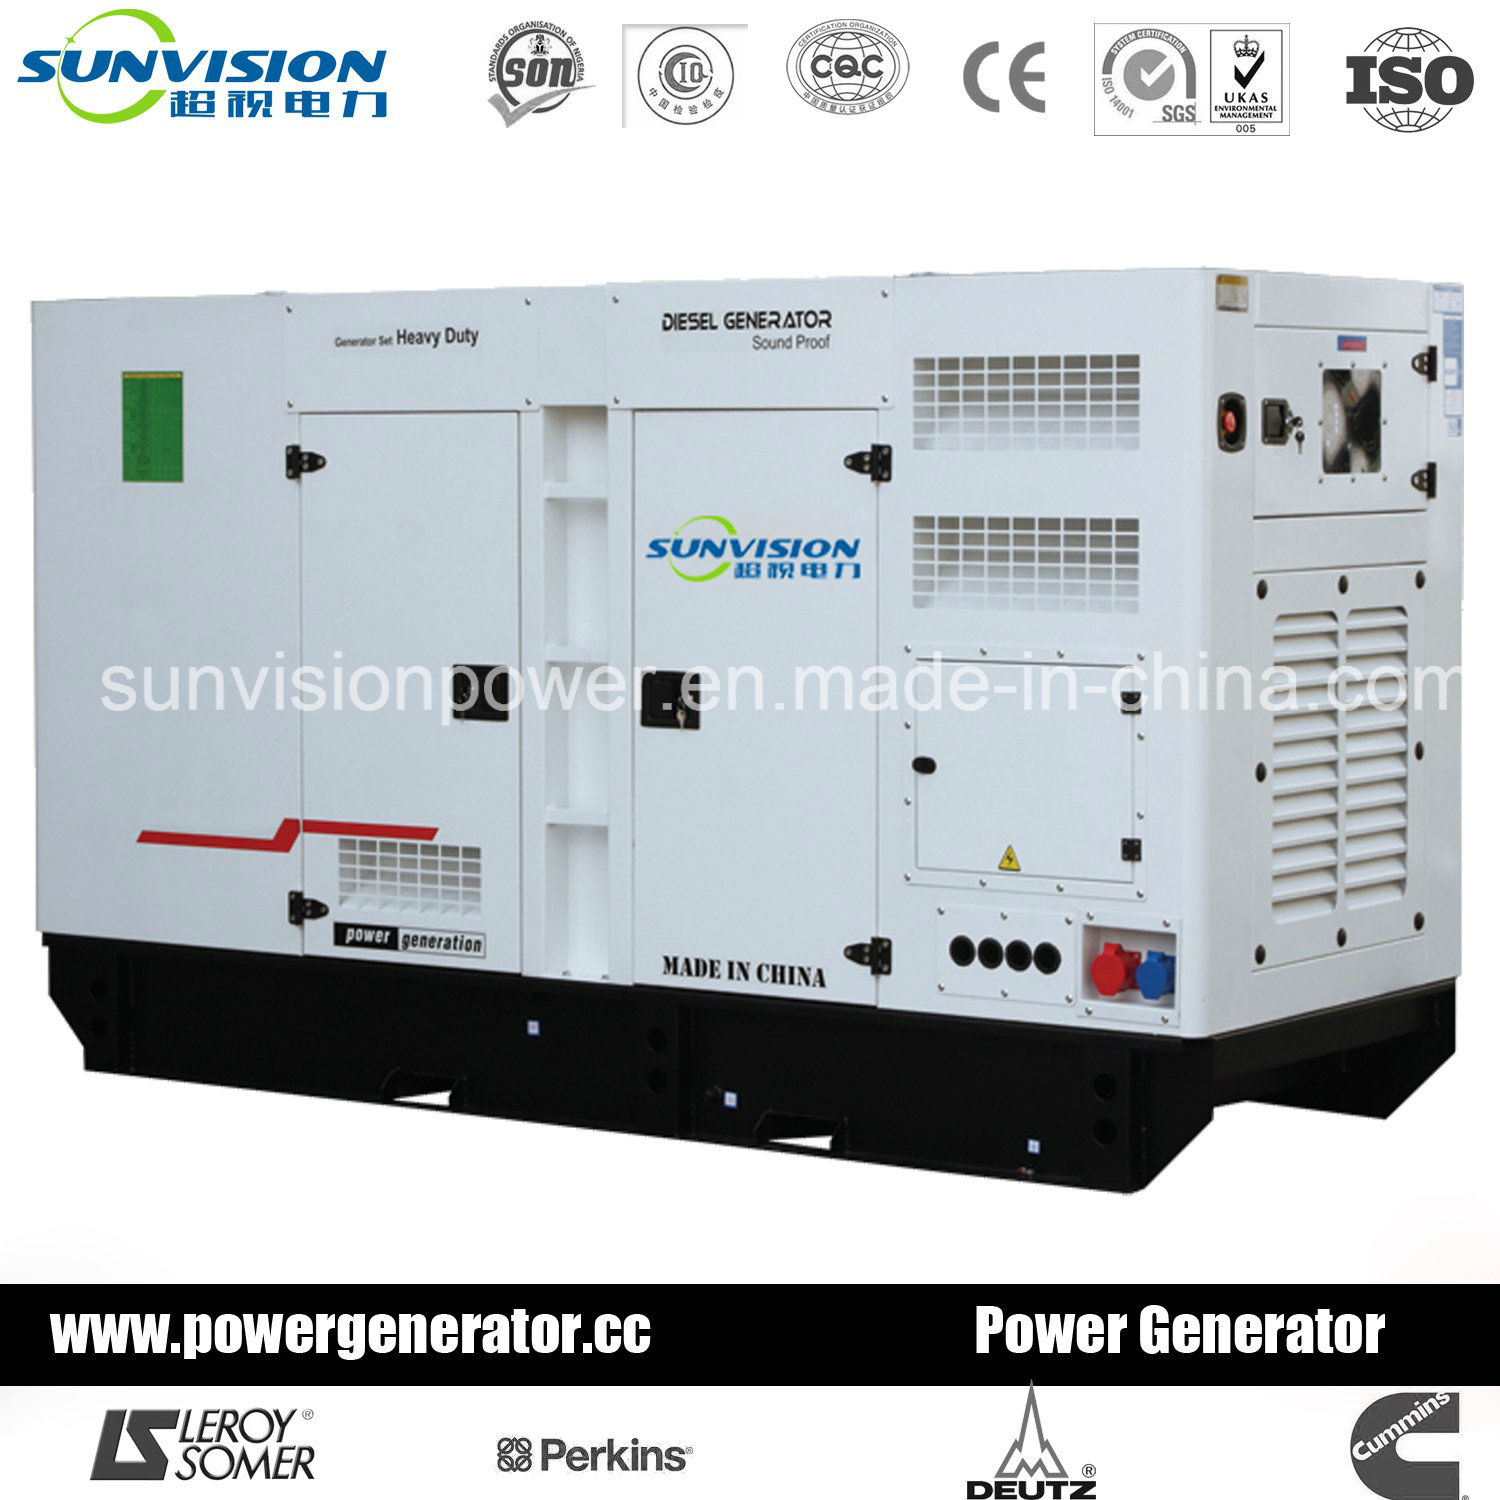 25kVA Super Silent Genset with Perkins Engine (with ISO certificate)